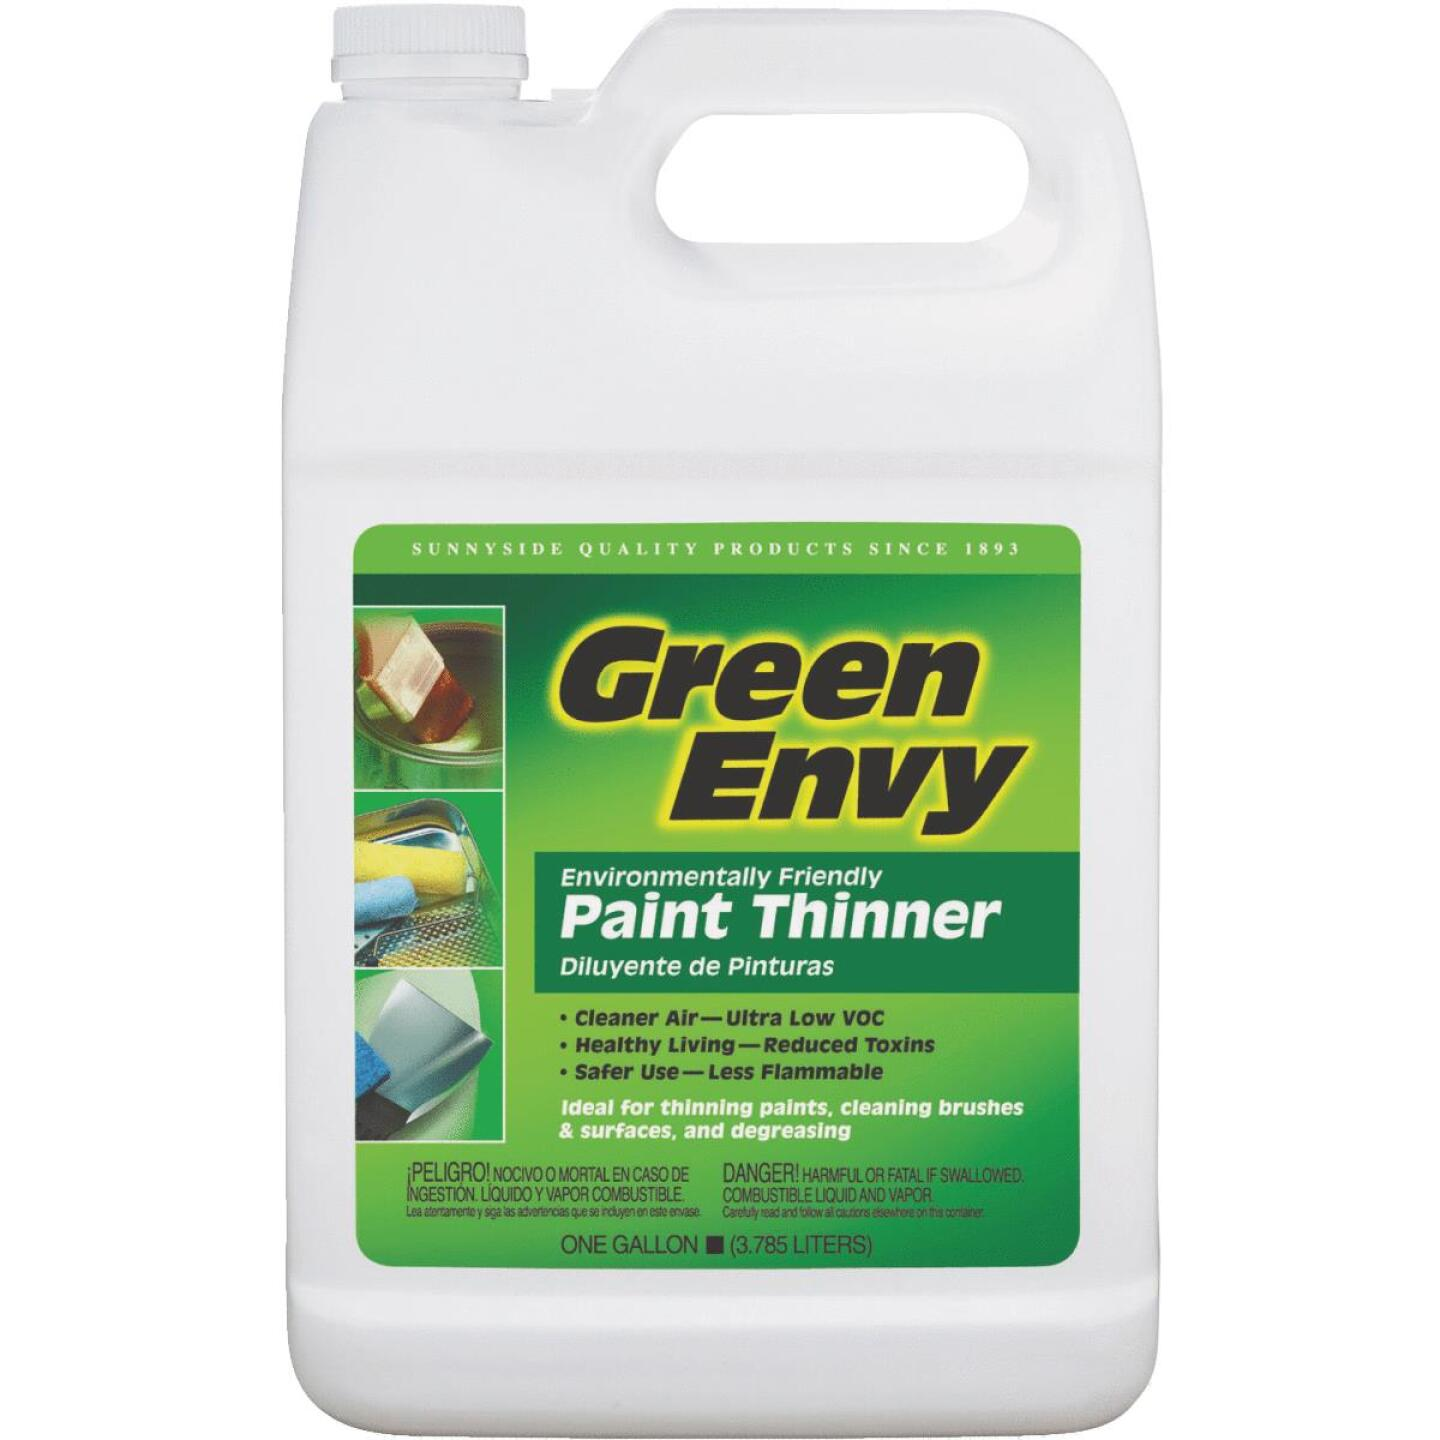 Sunnyside Green Envy 1 Gallon Paint Thinner Image 1